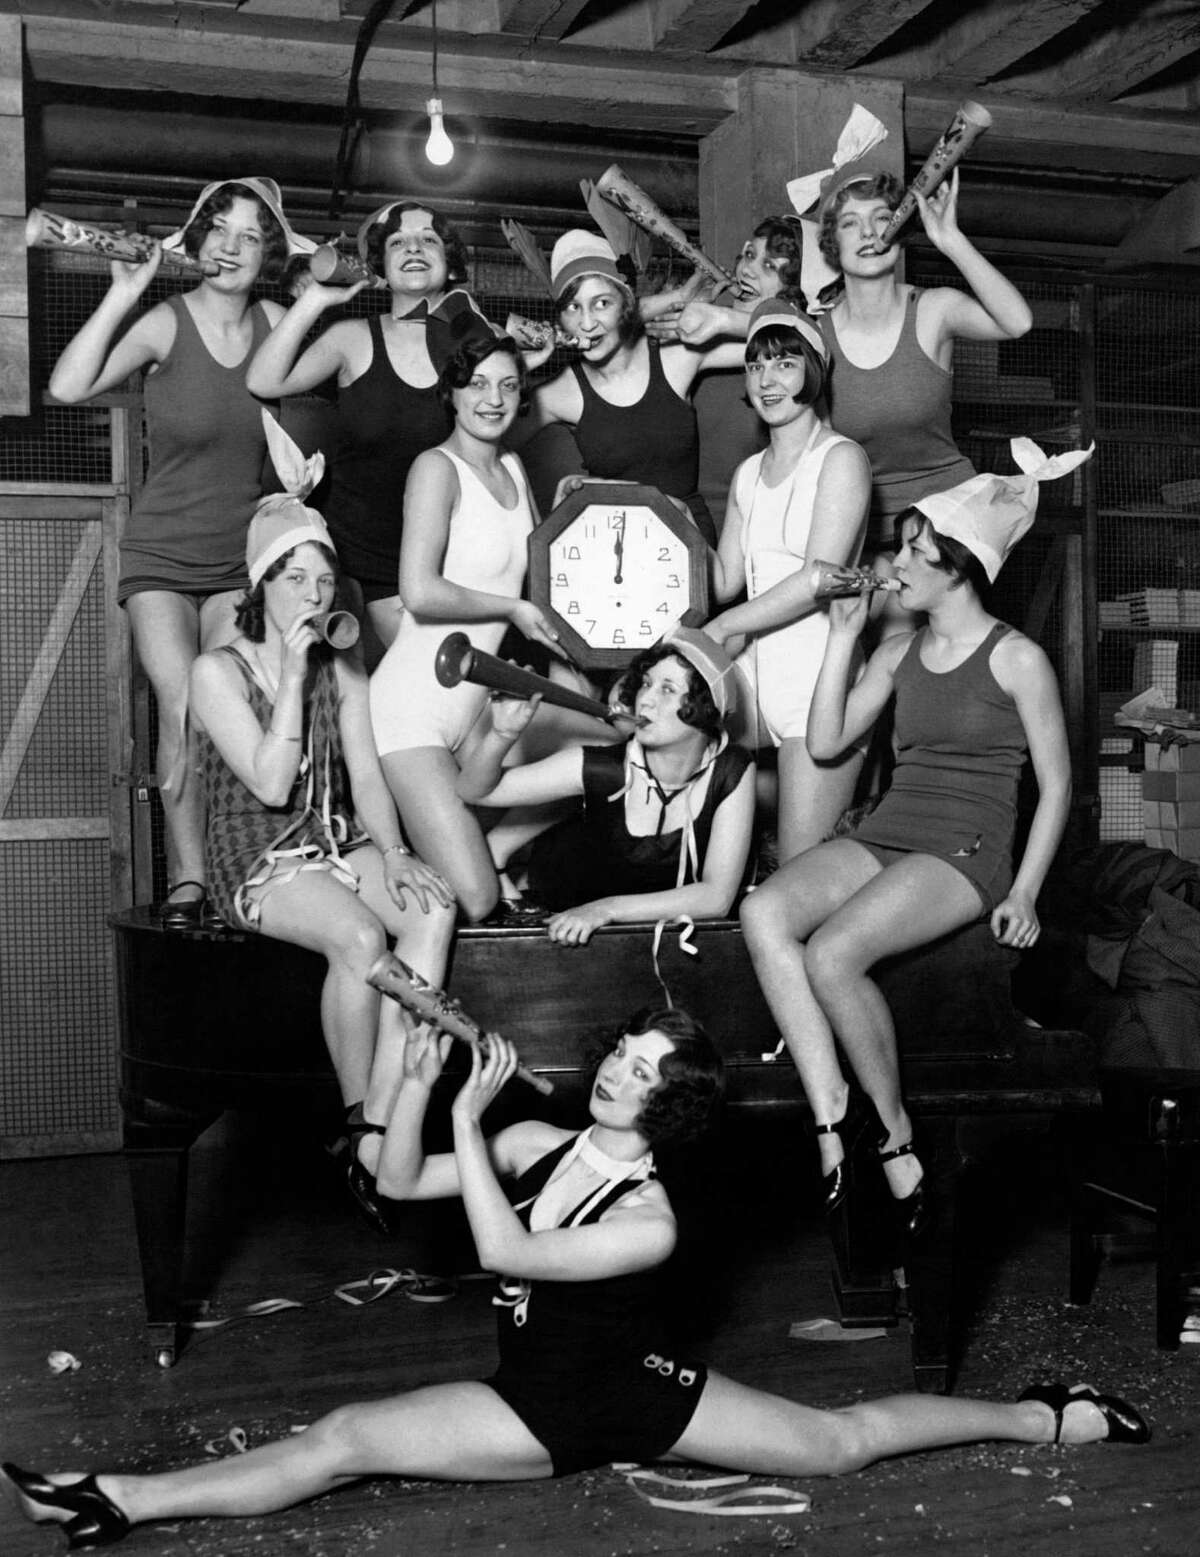 1927: A New Years Eve party in Chicago.